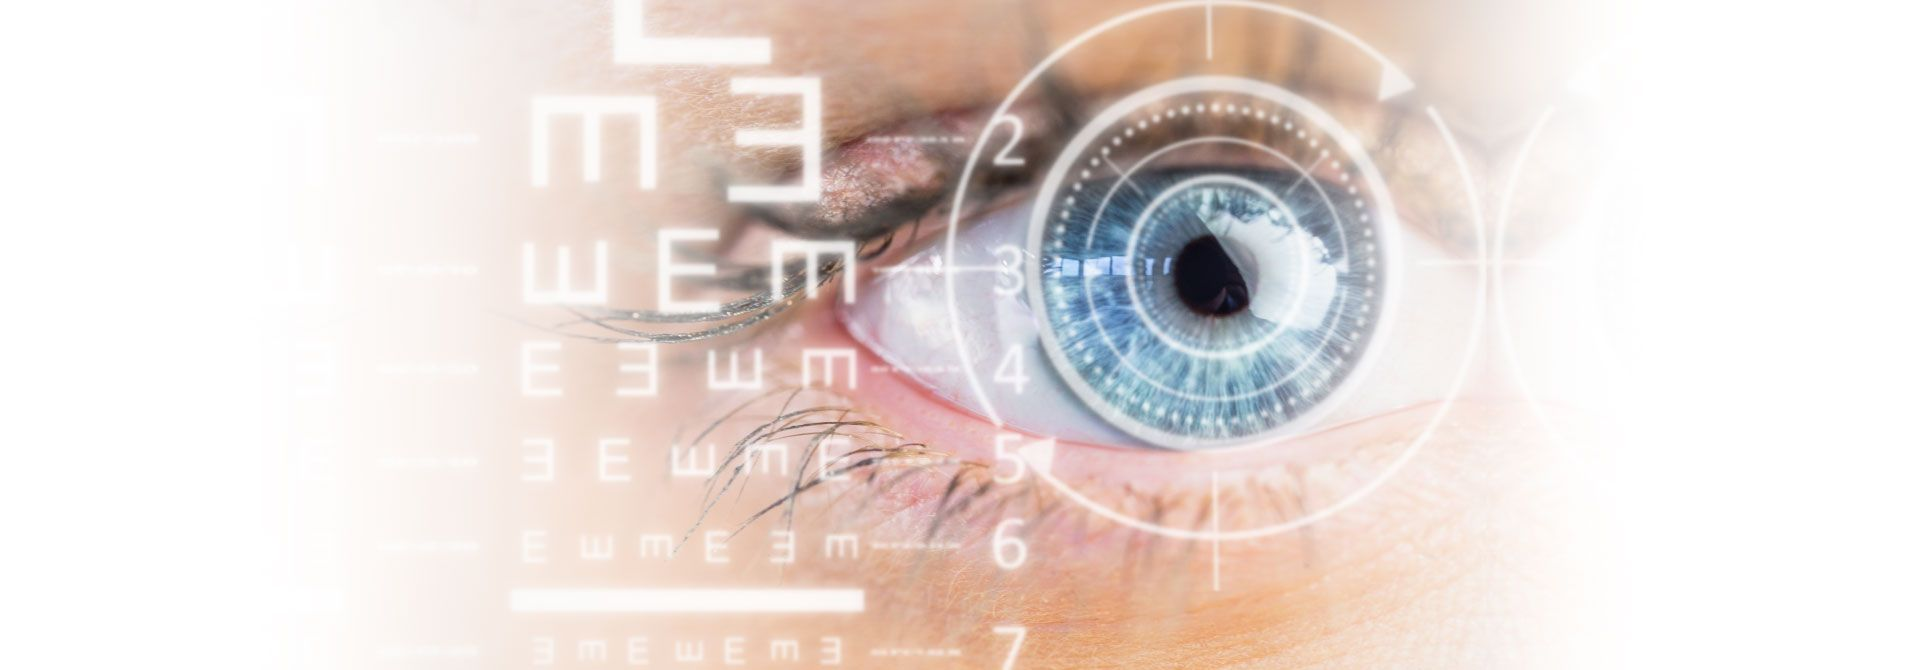 SightTrust Eye Institute's vision is to be recognized as a